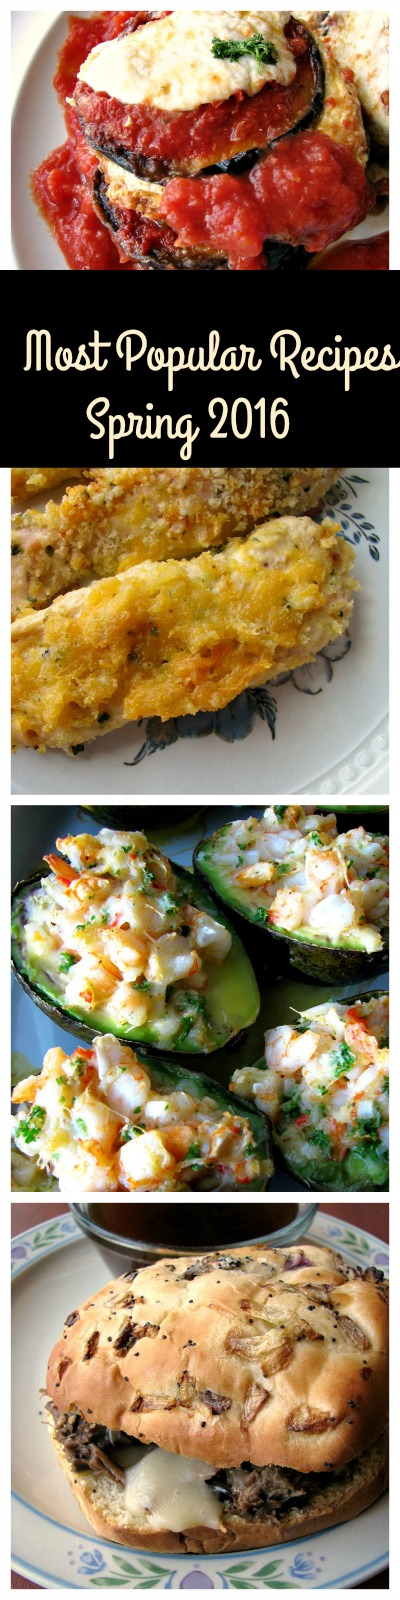 Most Popular Recipes Spring 2016- Eggplant Parmesan, Cheesy Baked Garlic Chicken Strips, Baked Seafood Stuffed Avocados, Slow Cooker French Dip Au Jus.